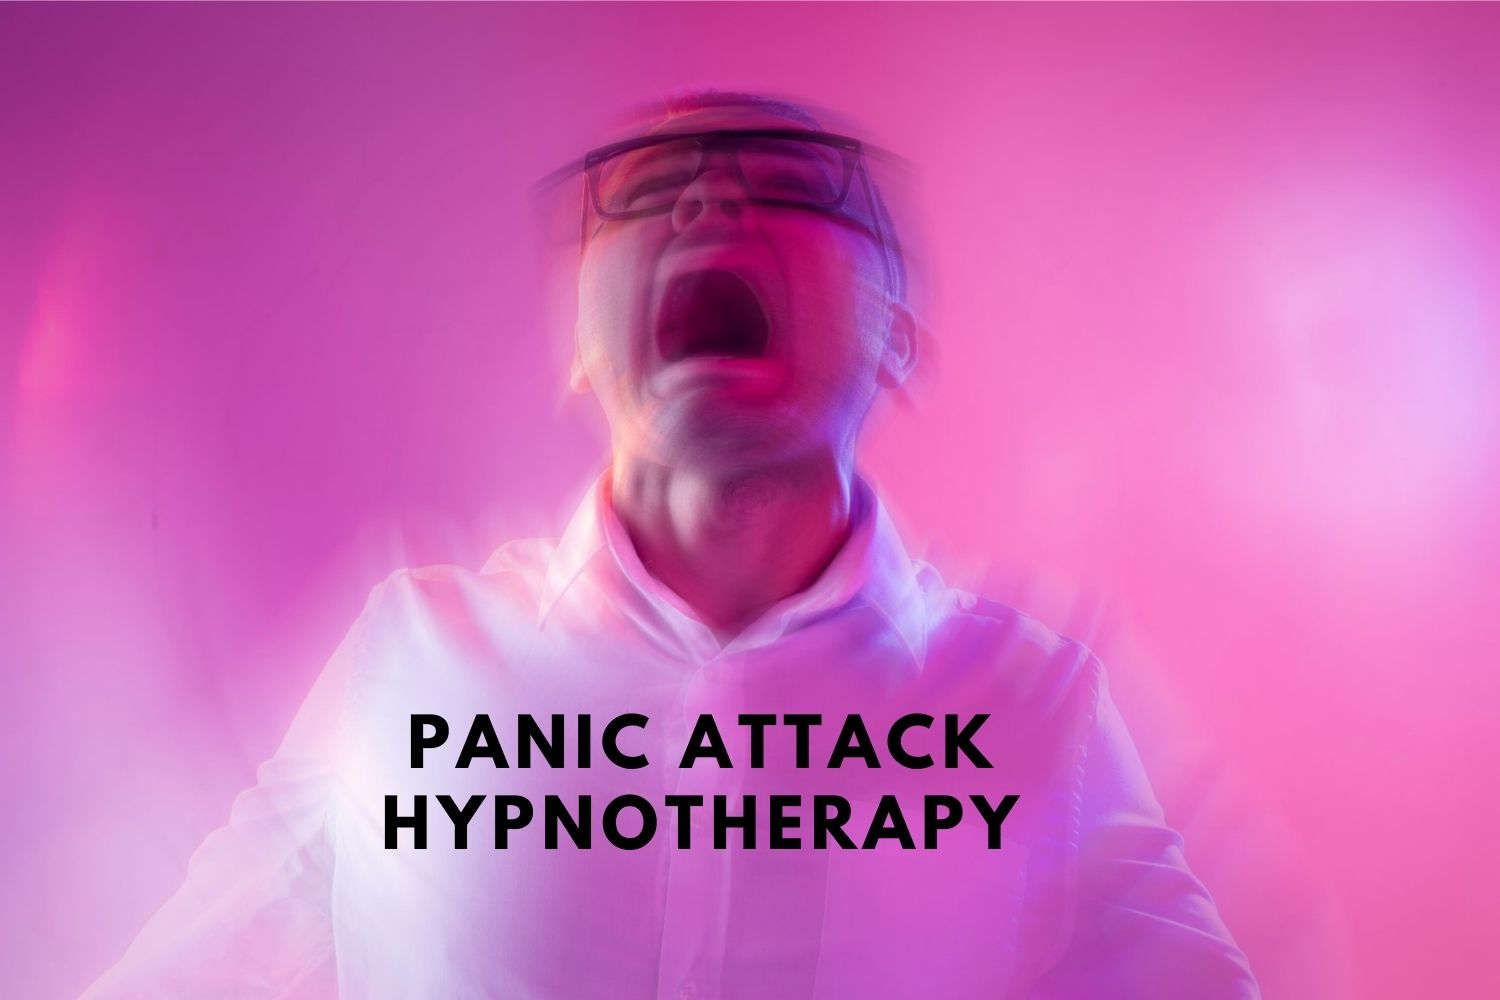 Panic Attack Hypnotherapy